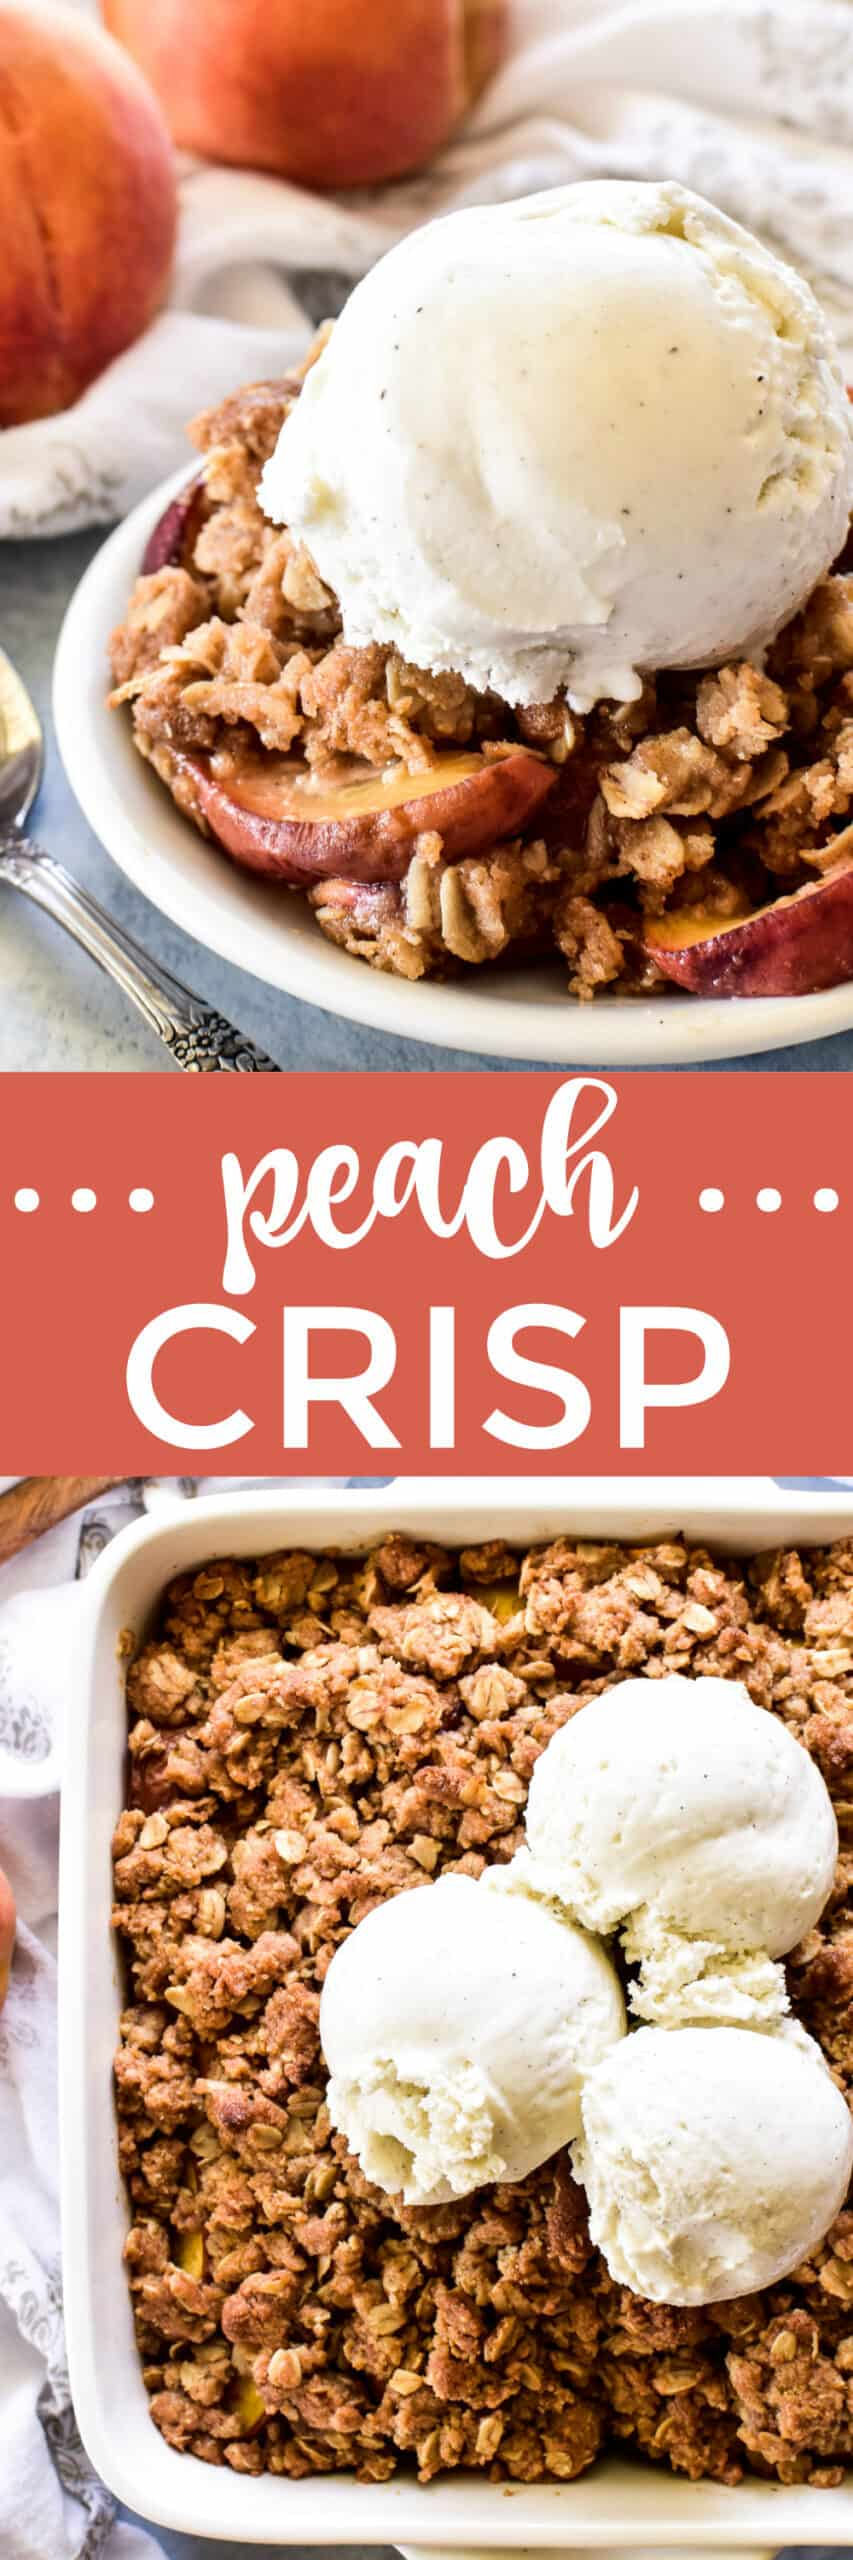 Collage image of Peach Crisp